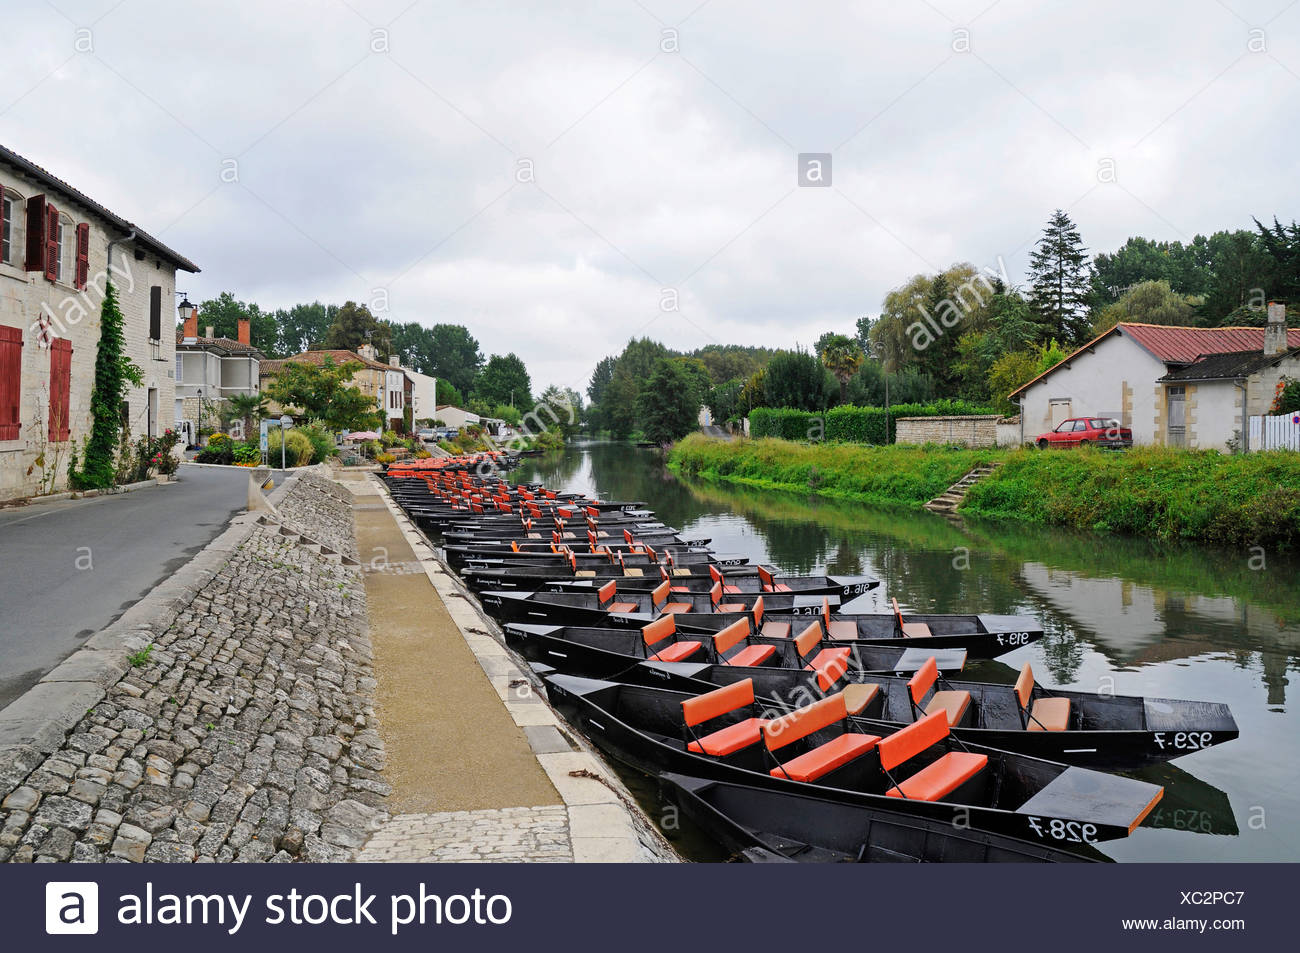 Boats, Marais Poitevin, river and marshes, Coulon, Poitou Charentes, France, Europe - Stock Image